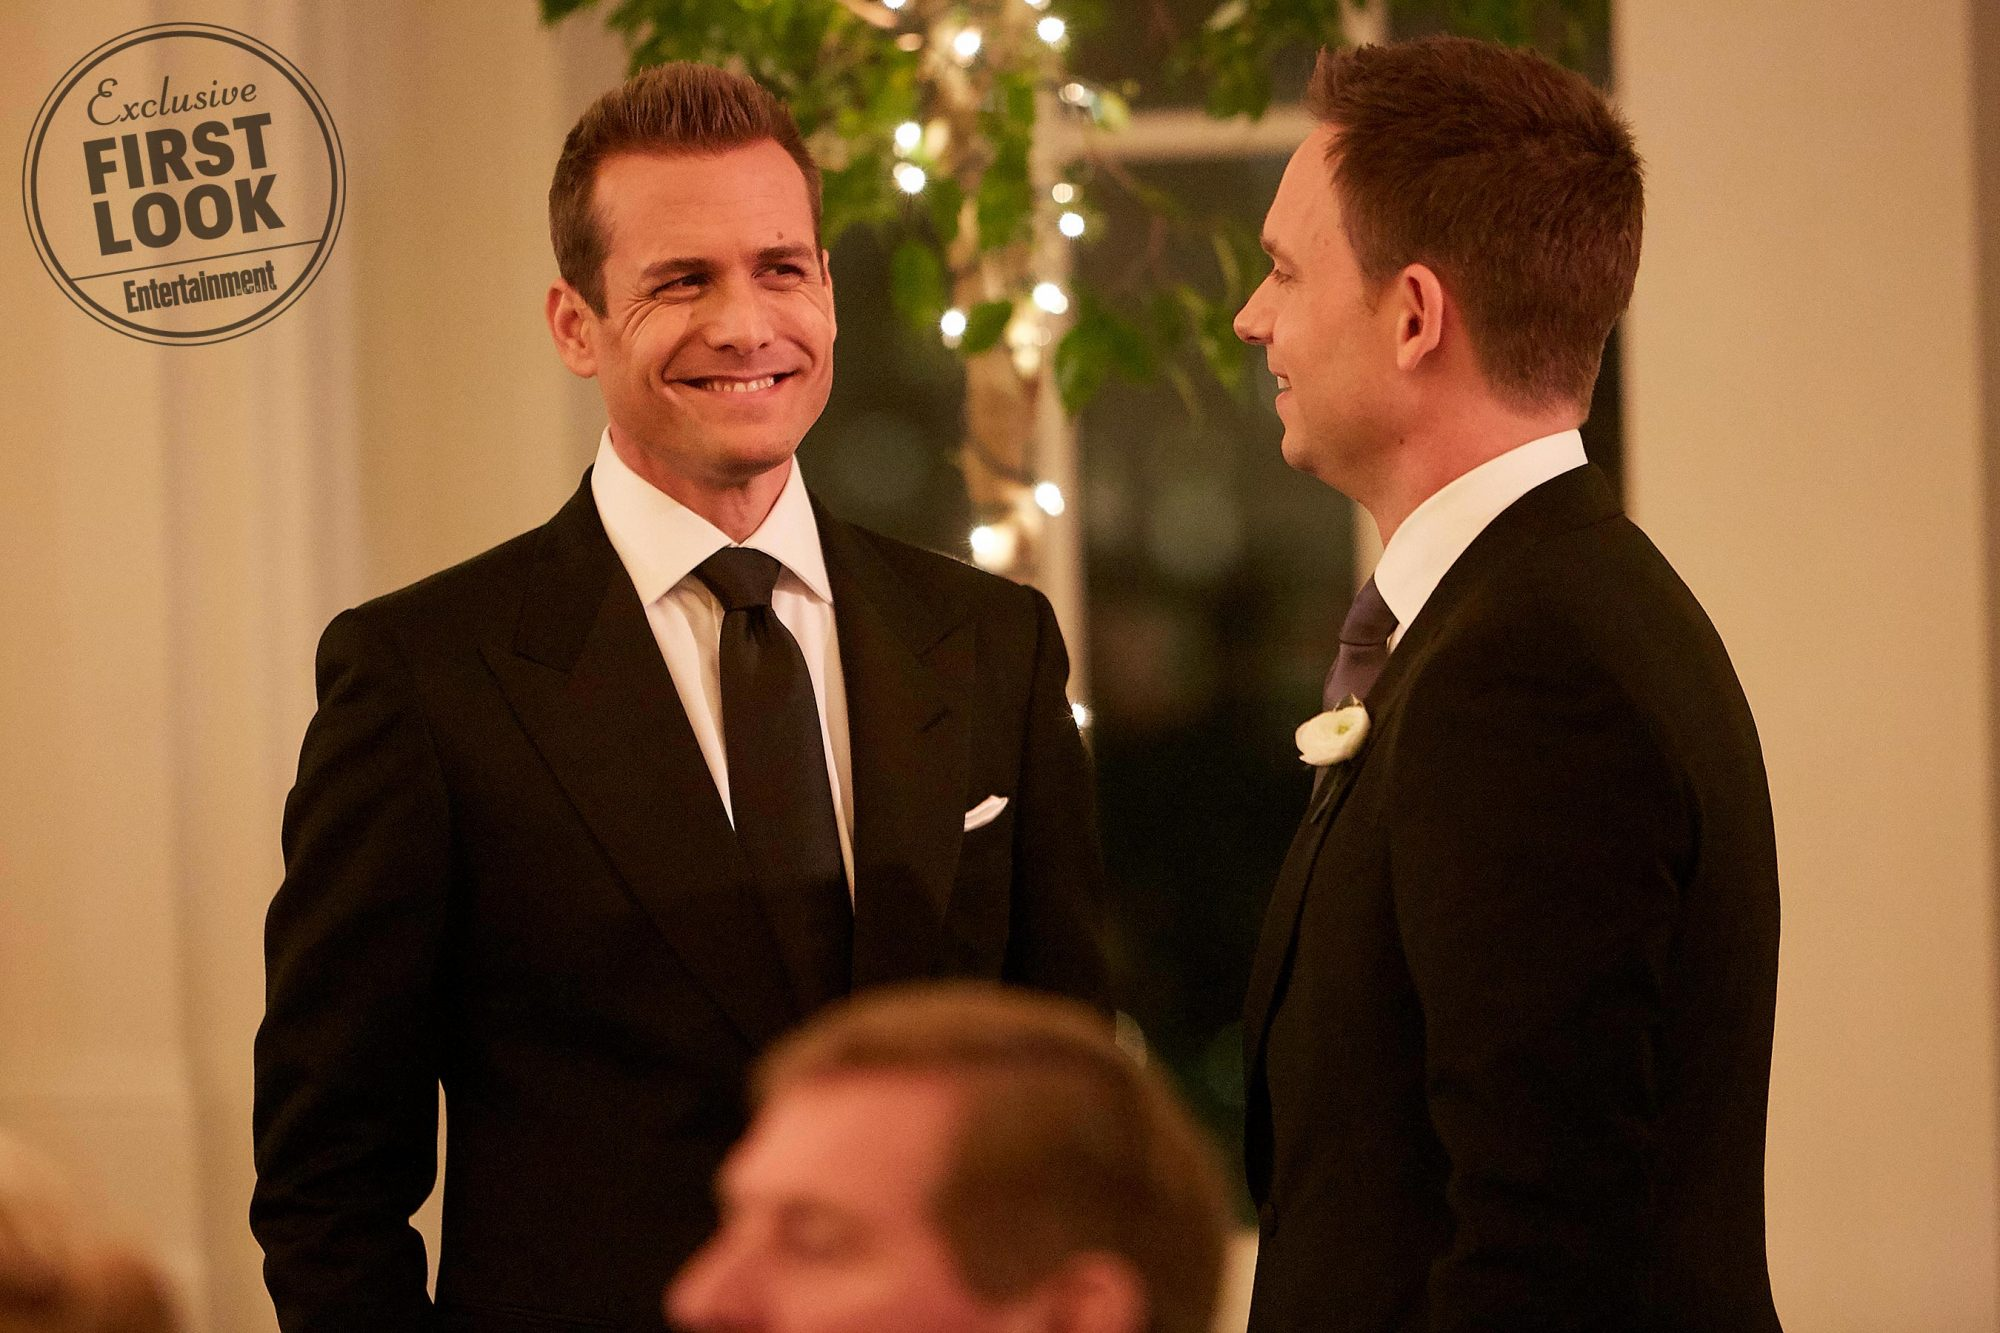 Harvey (Gabriel Macht) and Mike